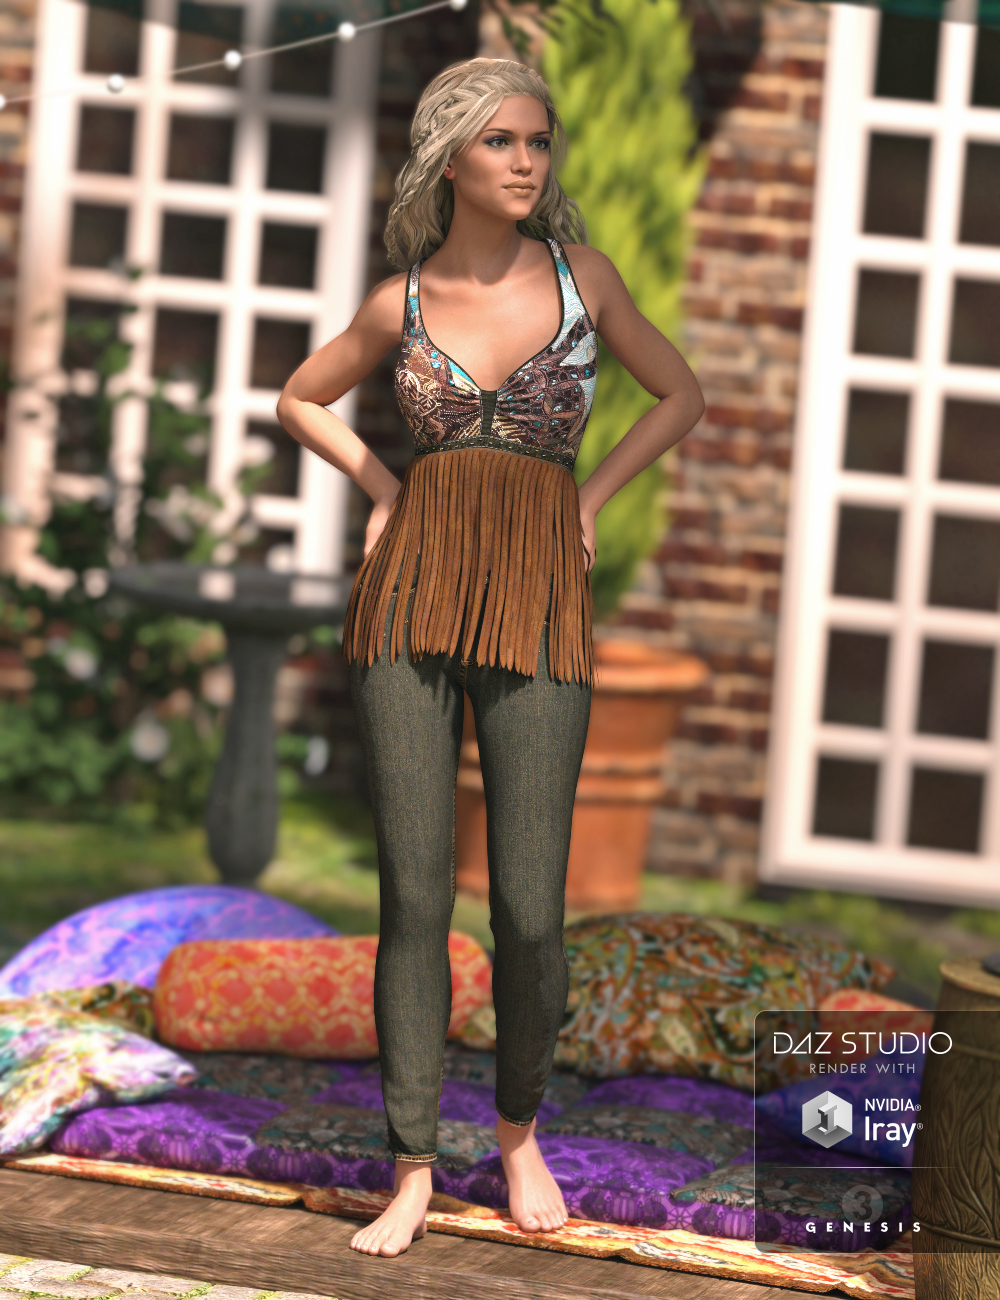 Fringed by: Sarsa, 3D Models by Daz 3D